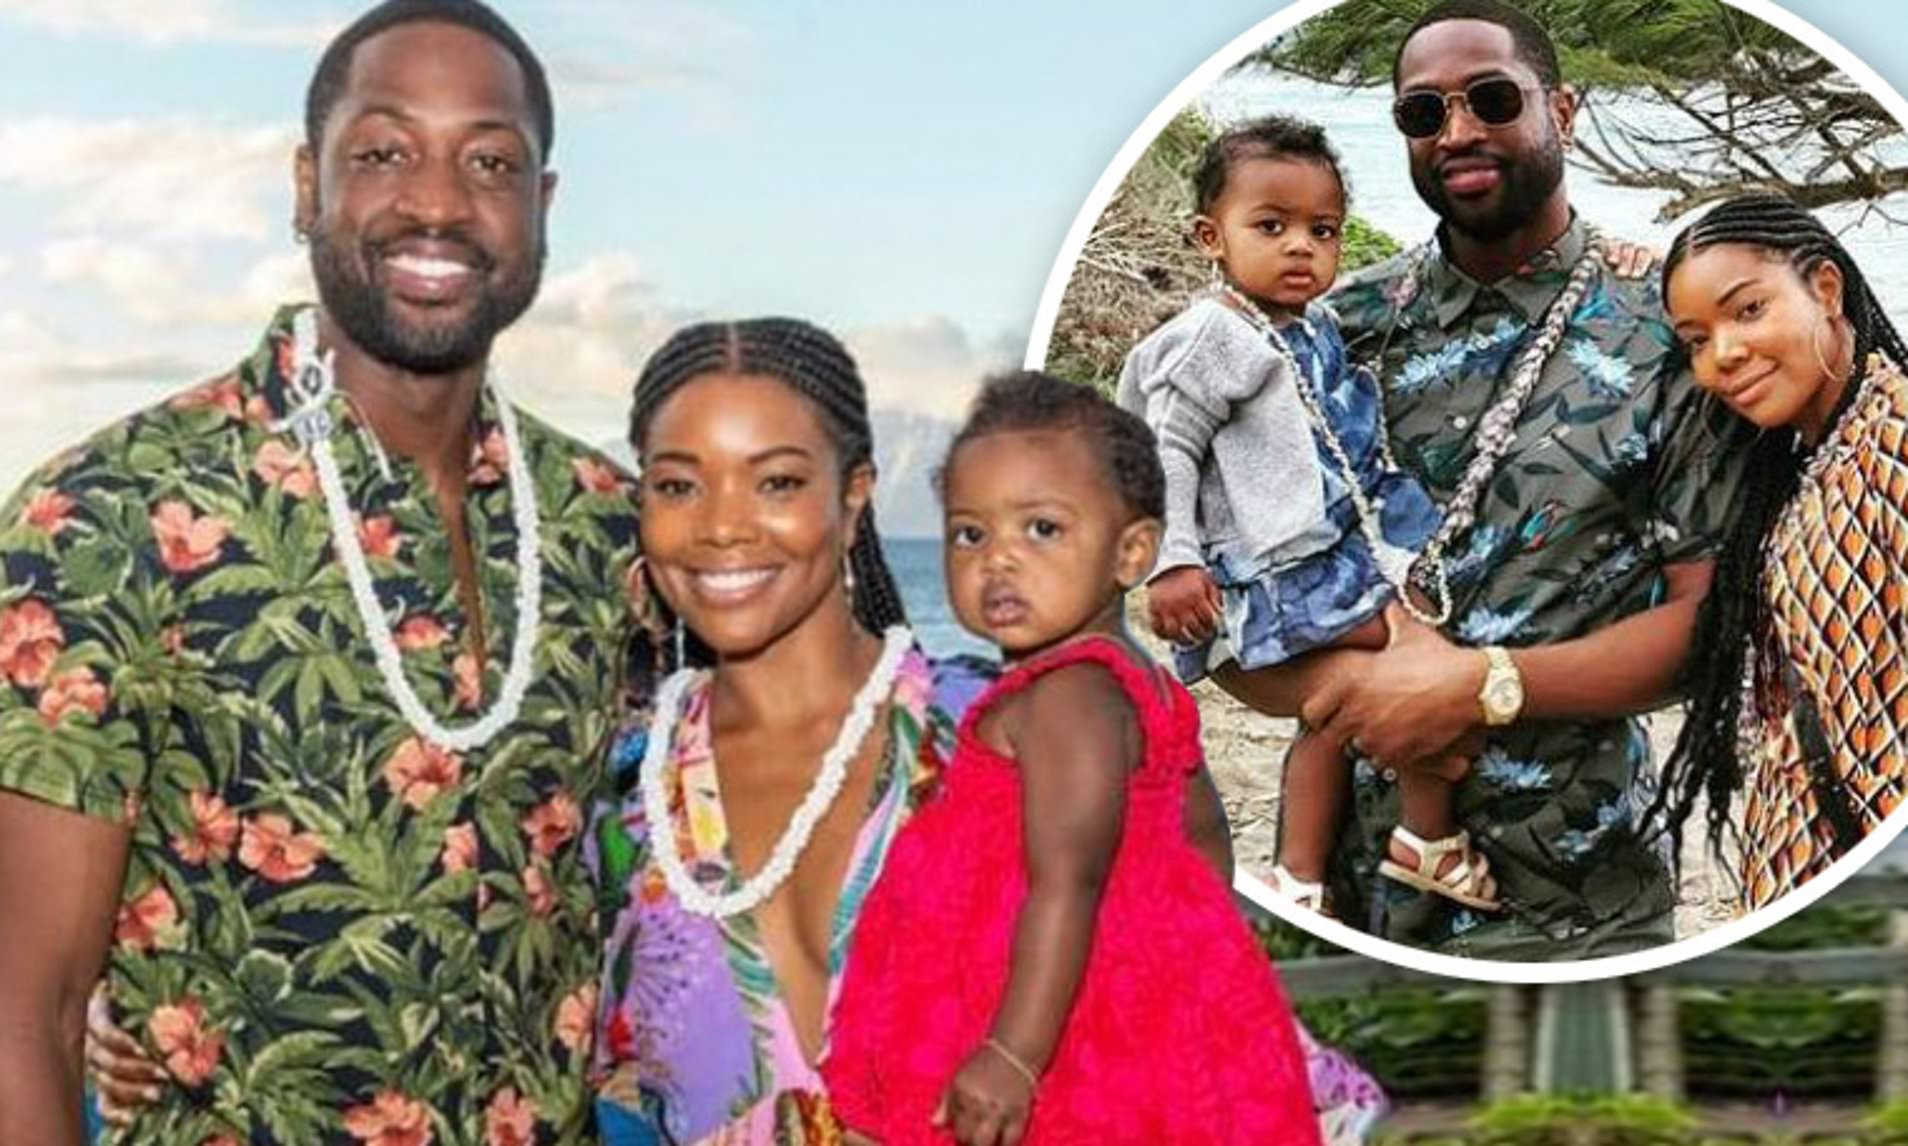 Gabrielle Union And Kaavia James Are Twinning In These Pics – See Their Sweet Matching Outfits